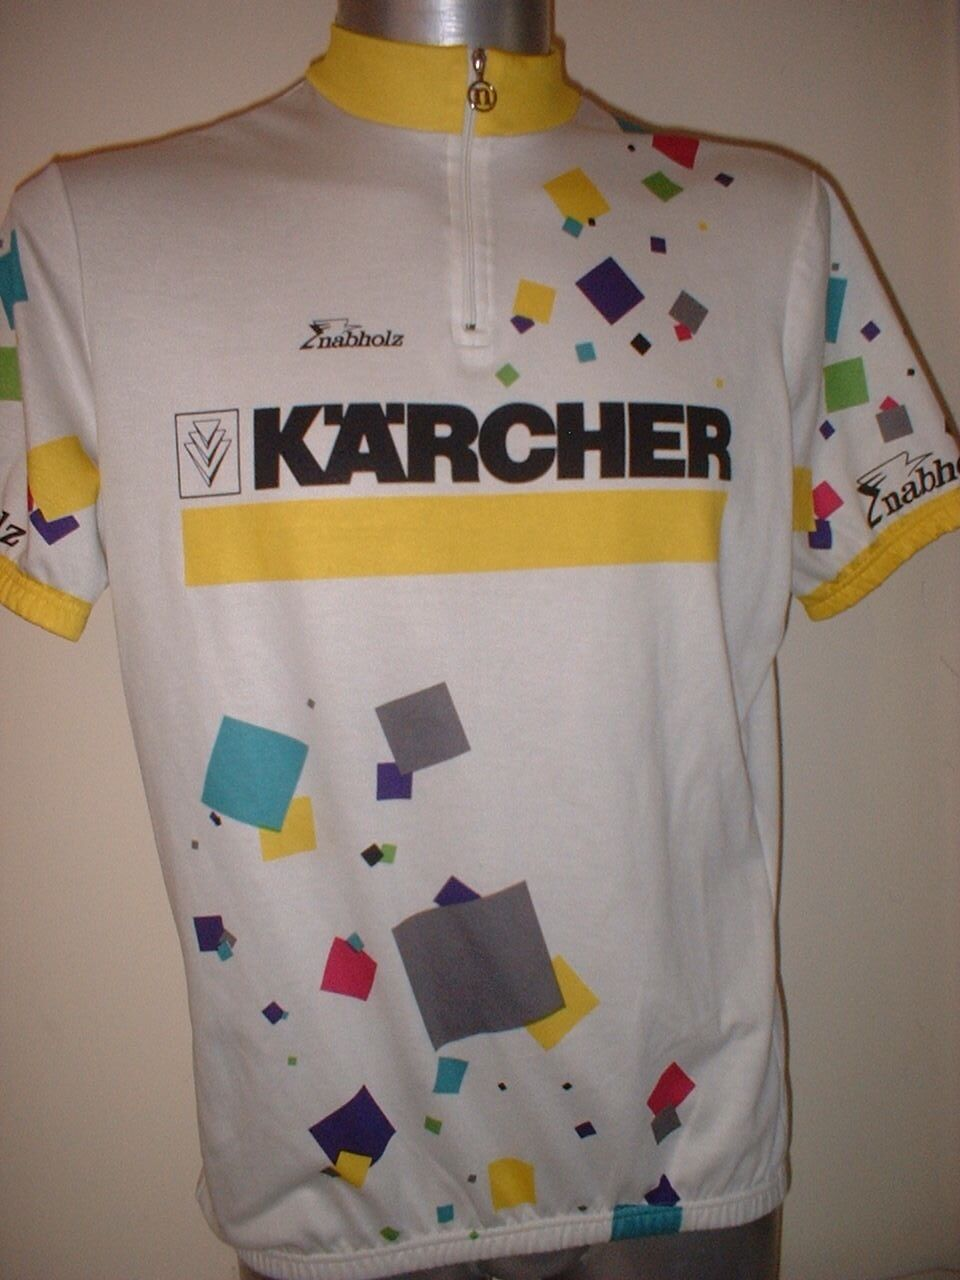 Karcher Nabholz Shirt Jersey Adult XL Cycling Cycle Bike Ciclismo Mountain Top